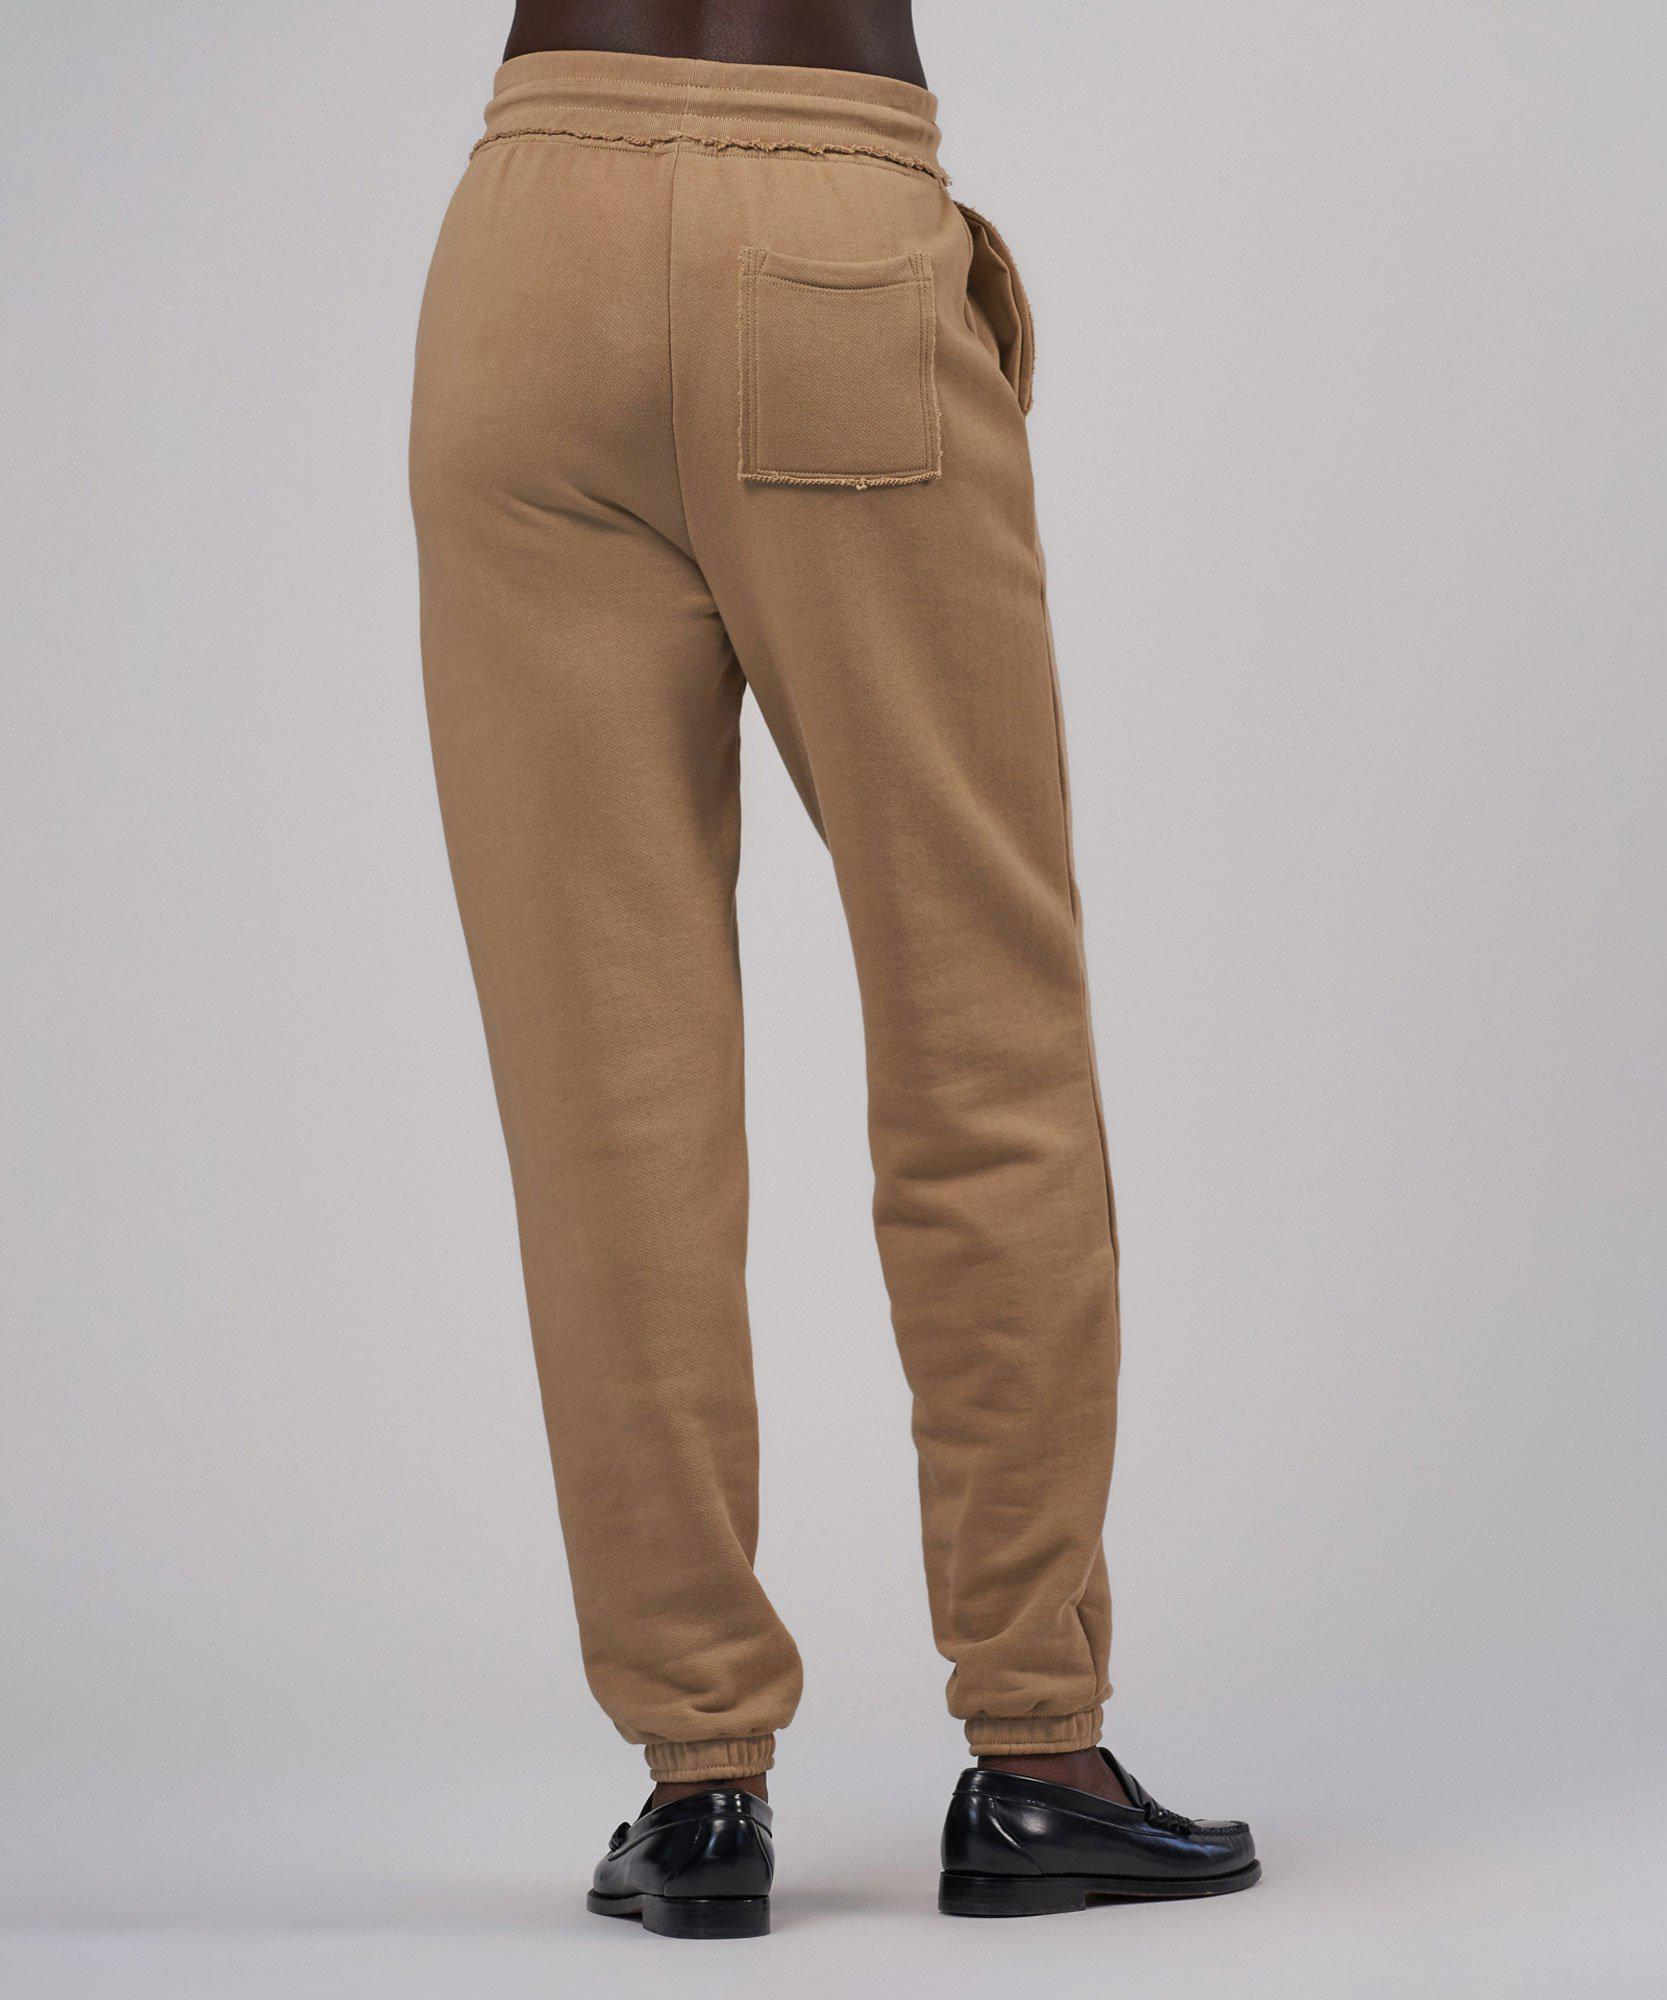 French Terry Pull-On Pant - Dune 2